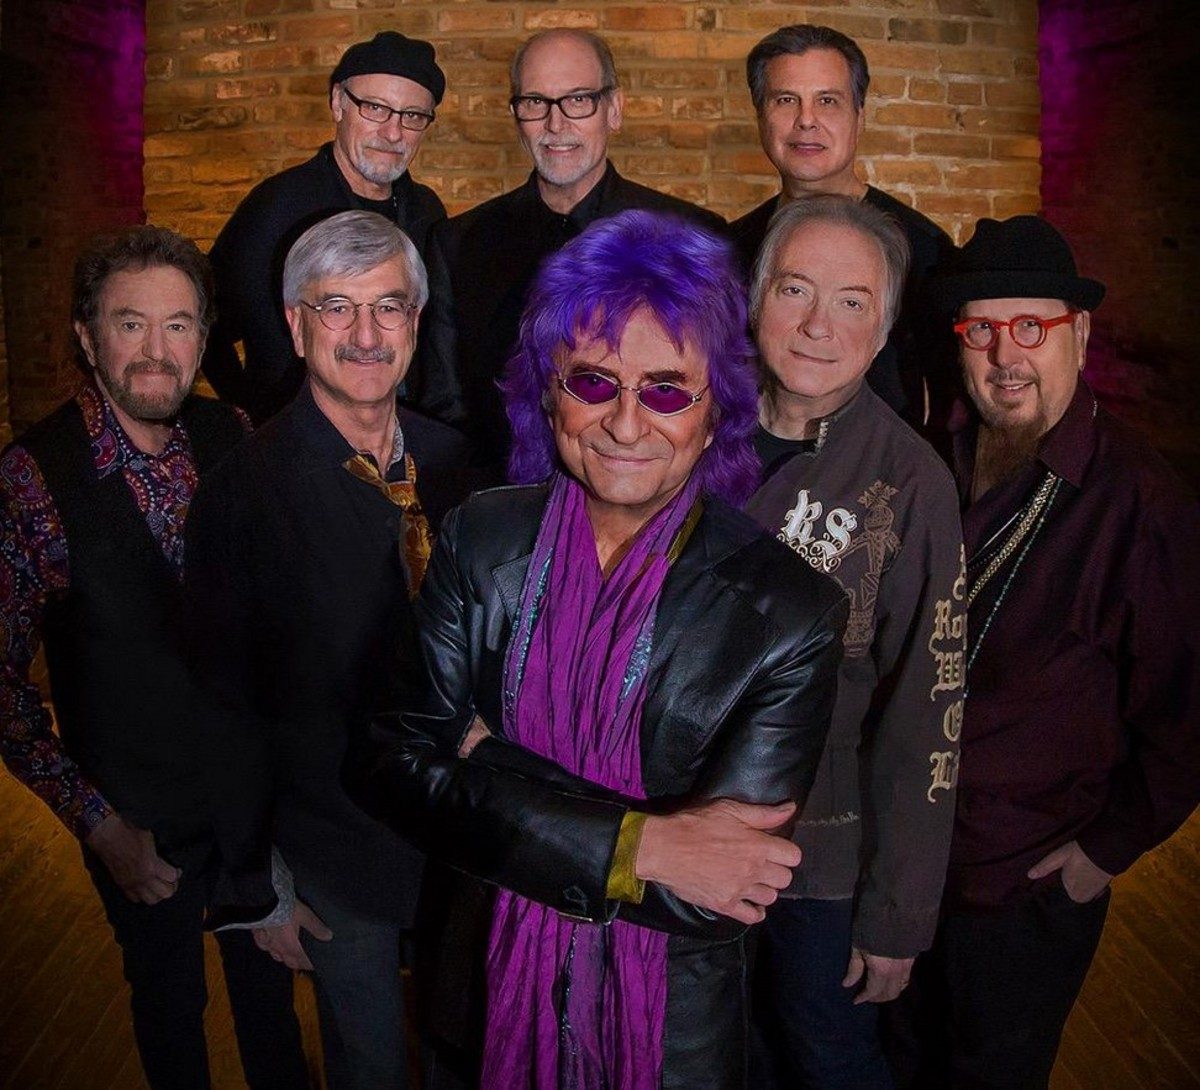 Current Ides of March band publicity photo, Jim Peterik in the center